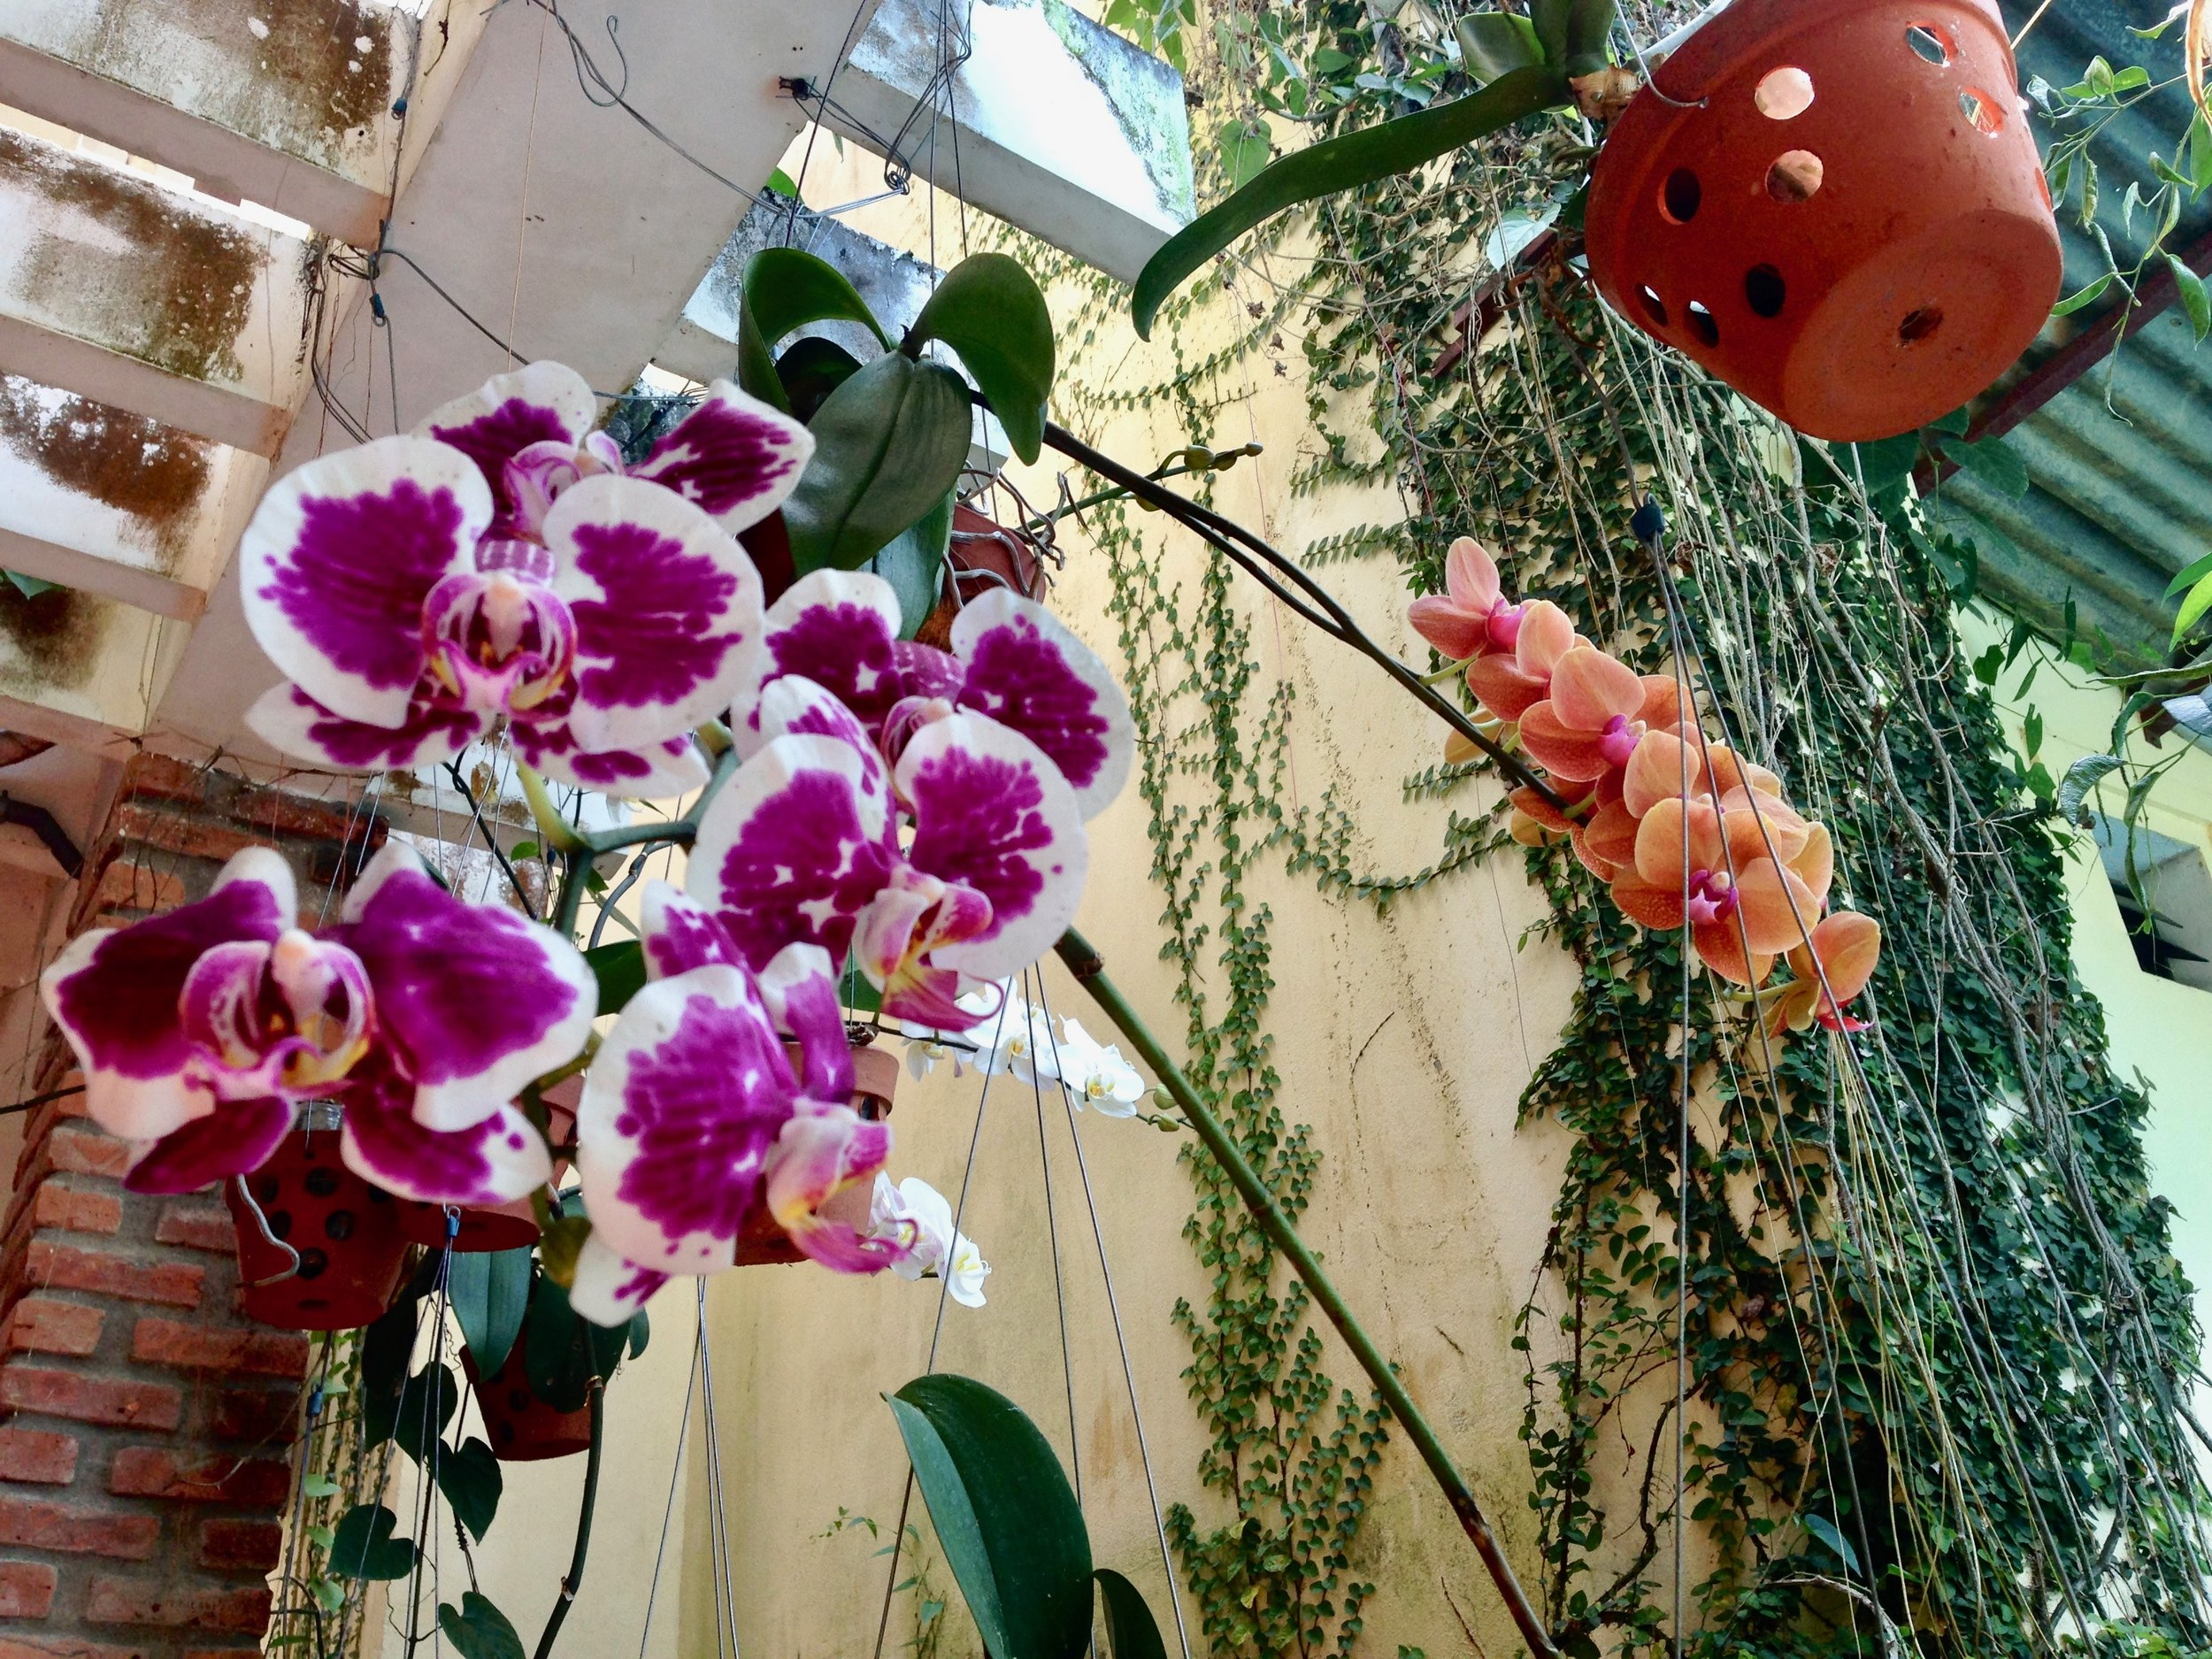 If you want to be showered in the most beautiful orchids in Hoi An, go to Hoi An Orchid Garden Villa - they might even cook you a delicious FREE dinner just because they're lovely like that.